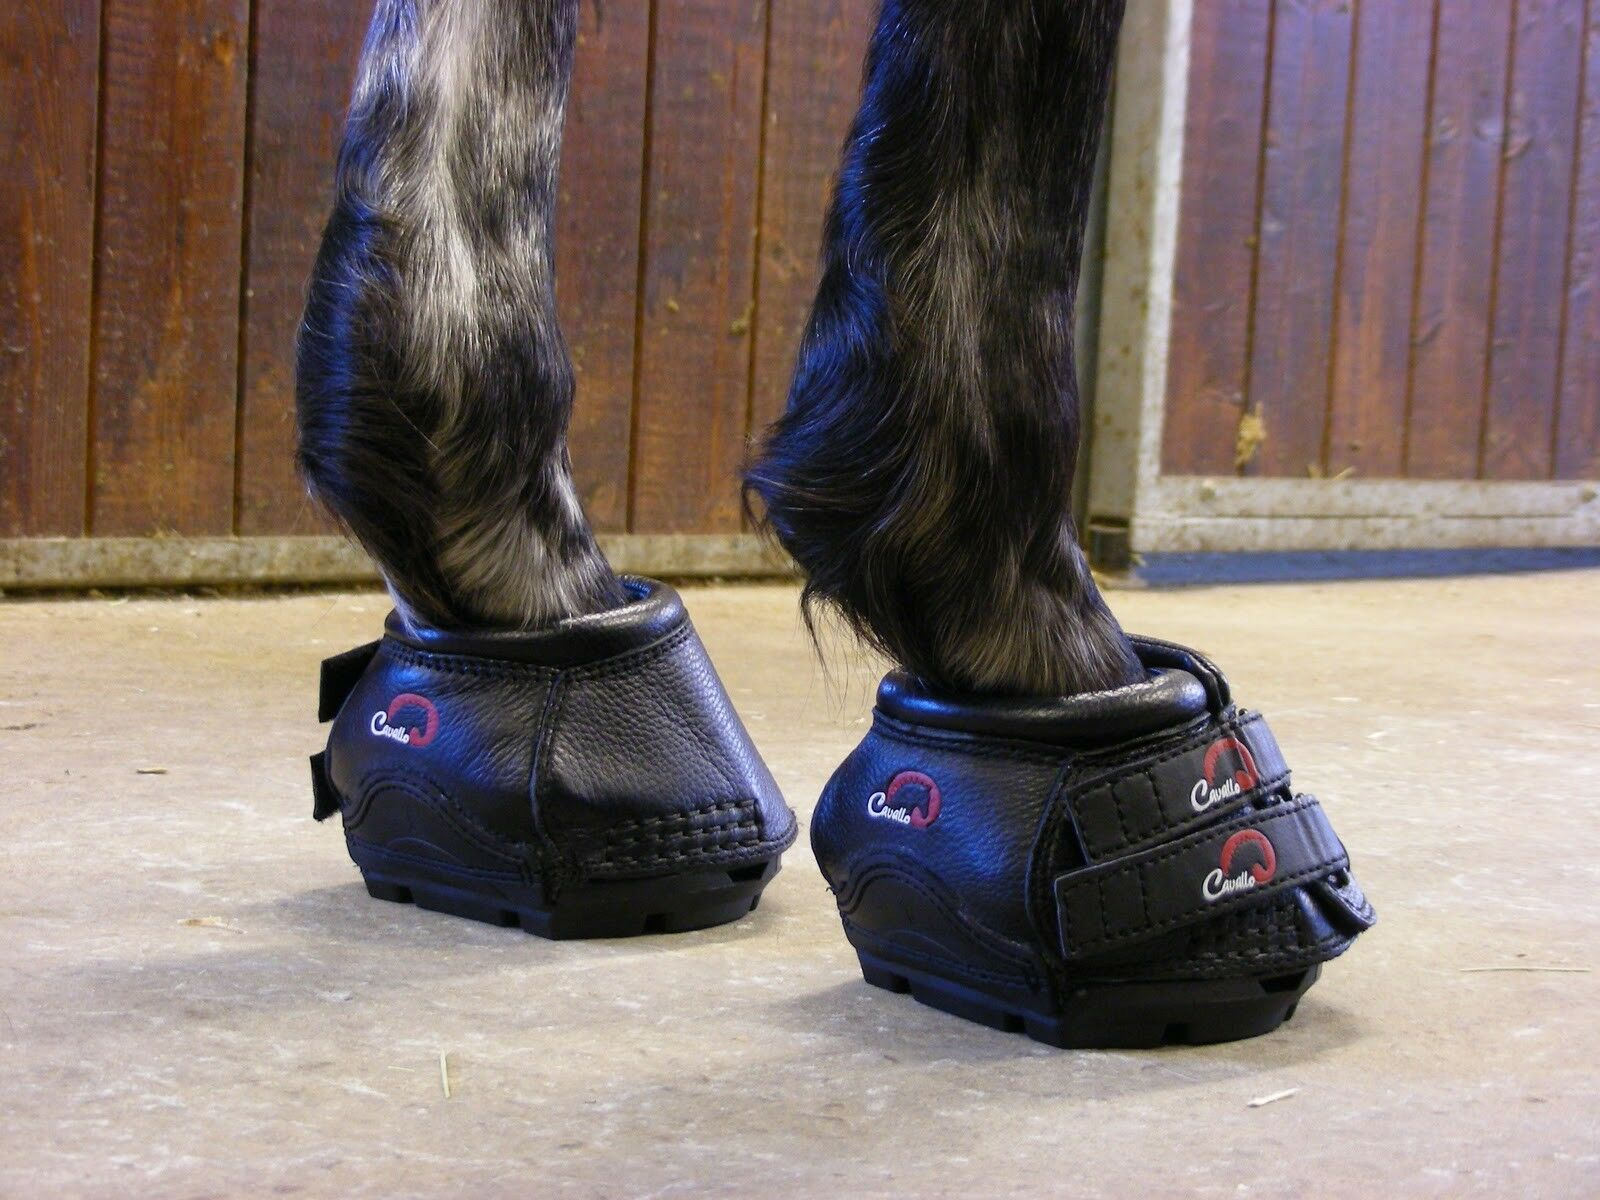 chaussures per cavallo Simple Hoof bottes chaussures for horses